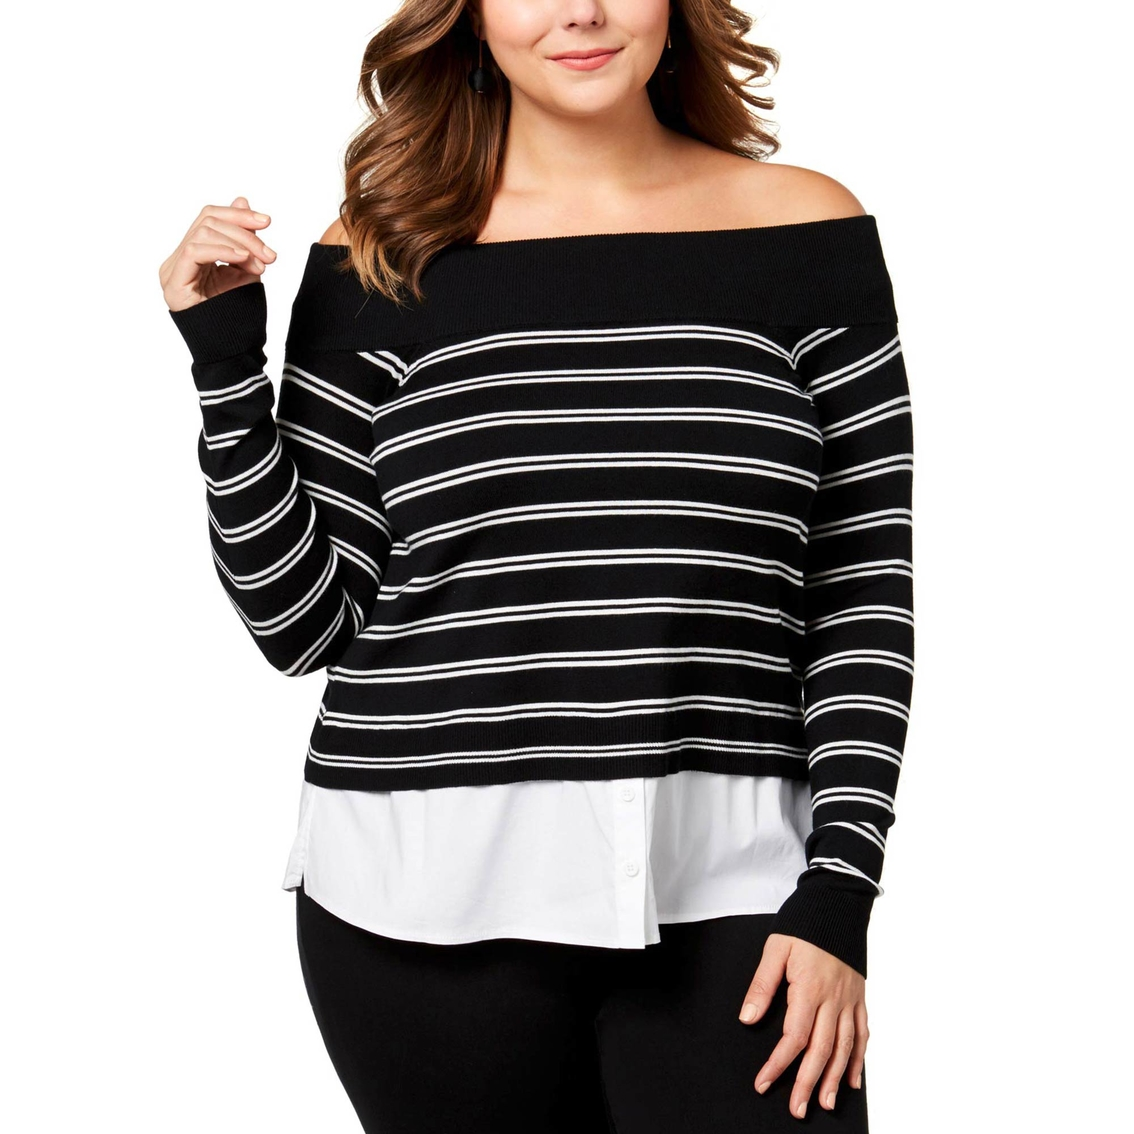 b60aebd1e6b INC International Concepts Plus Size Layered Look Off the Shoulder Sweater